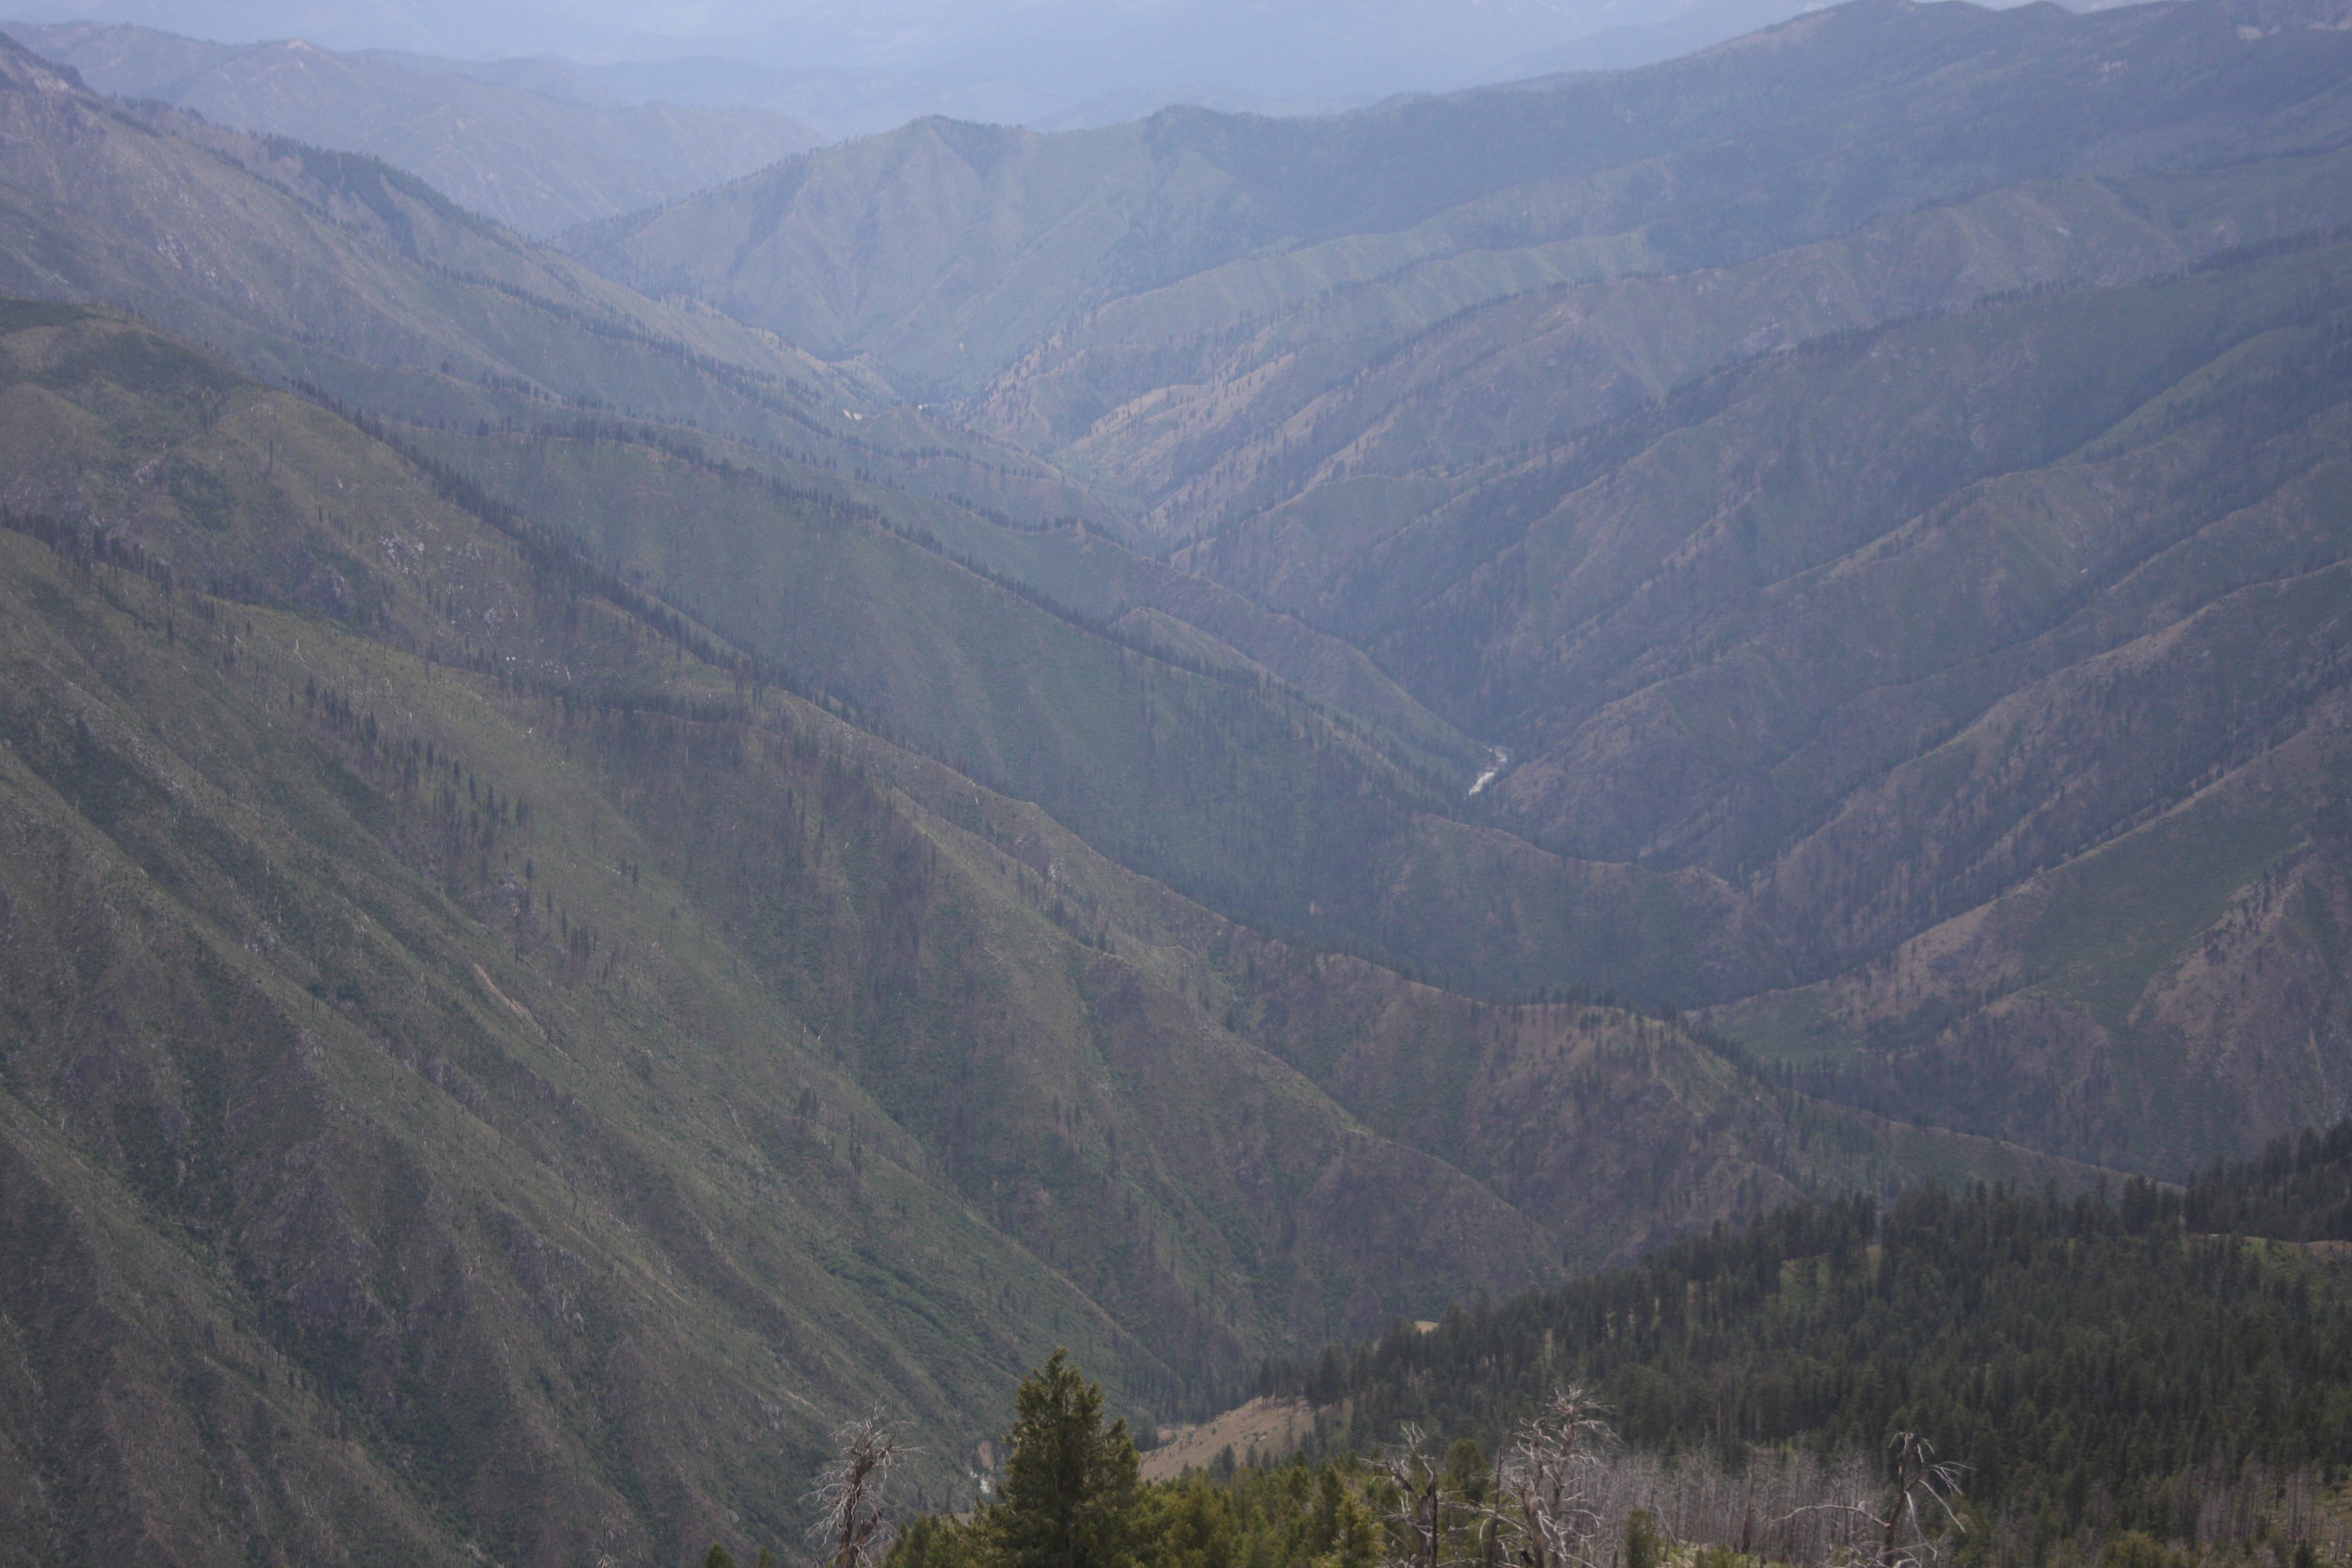 South Fork of the Salmon River